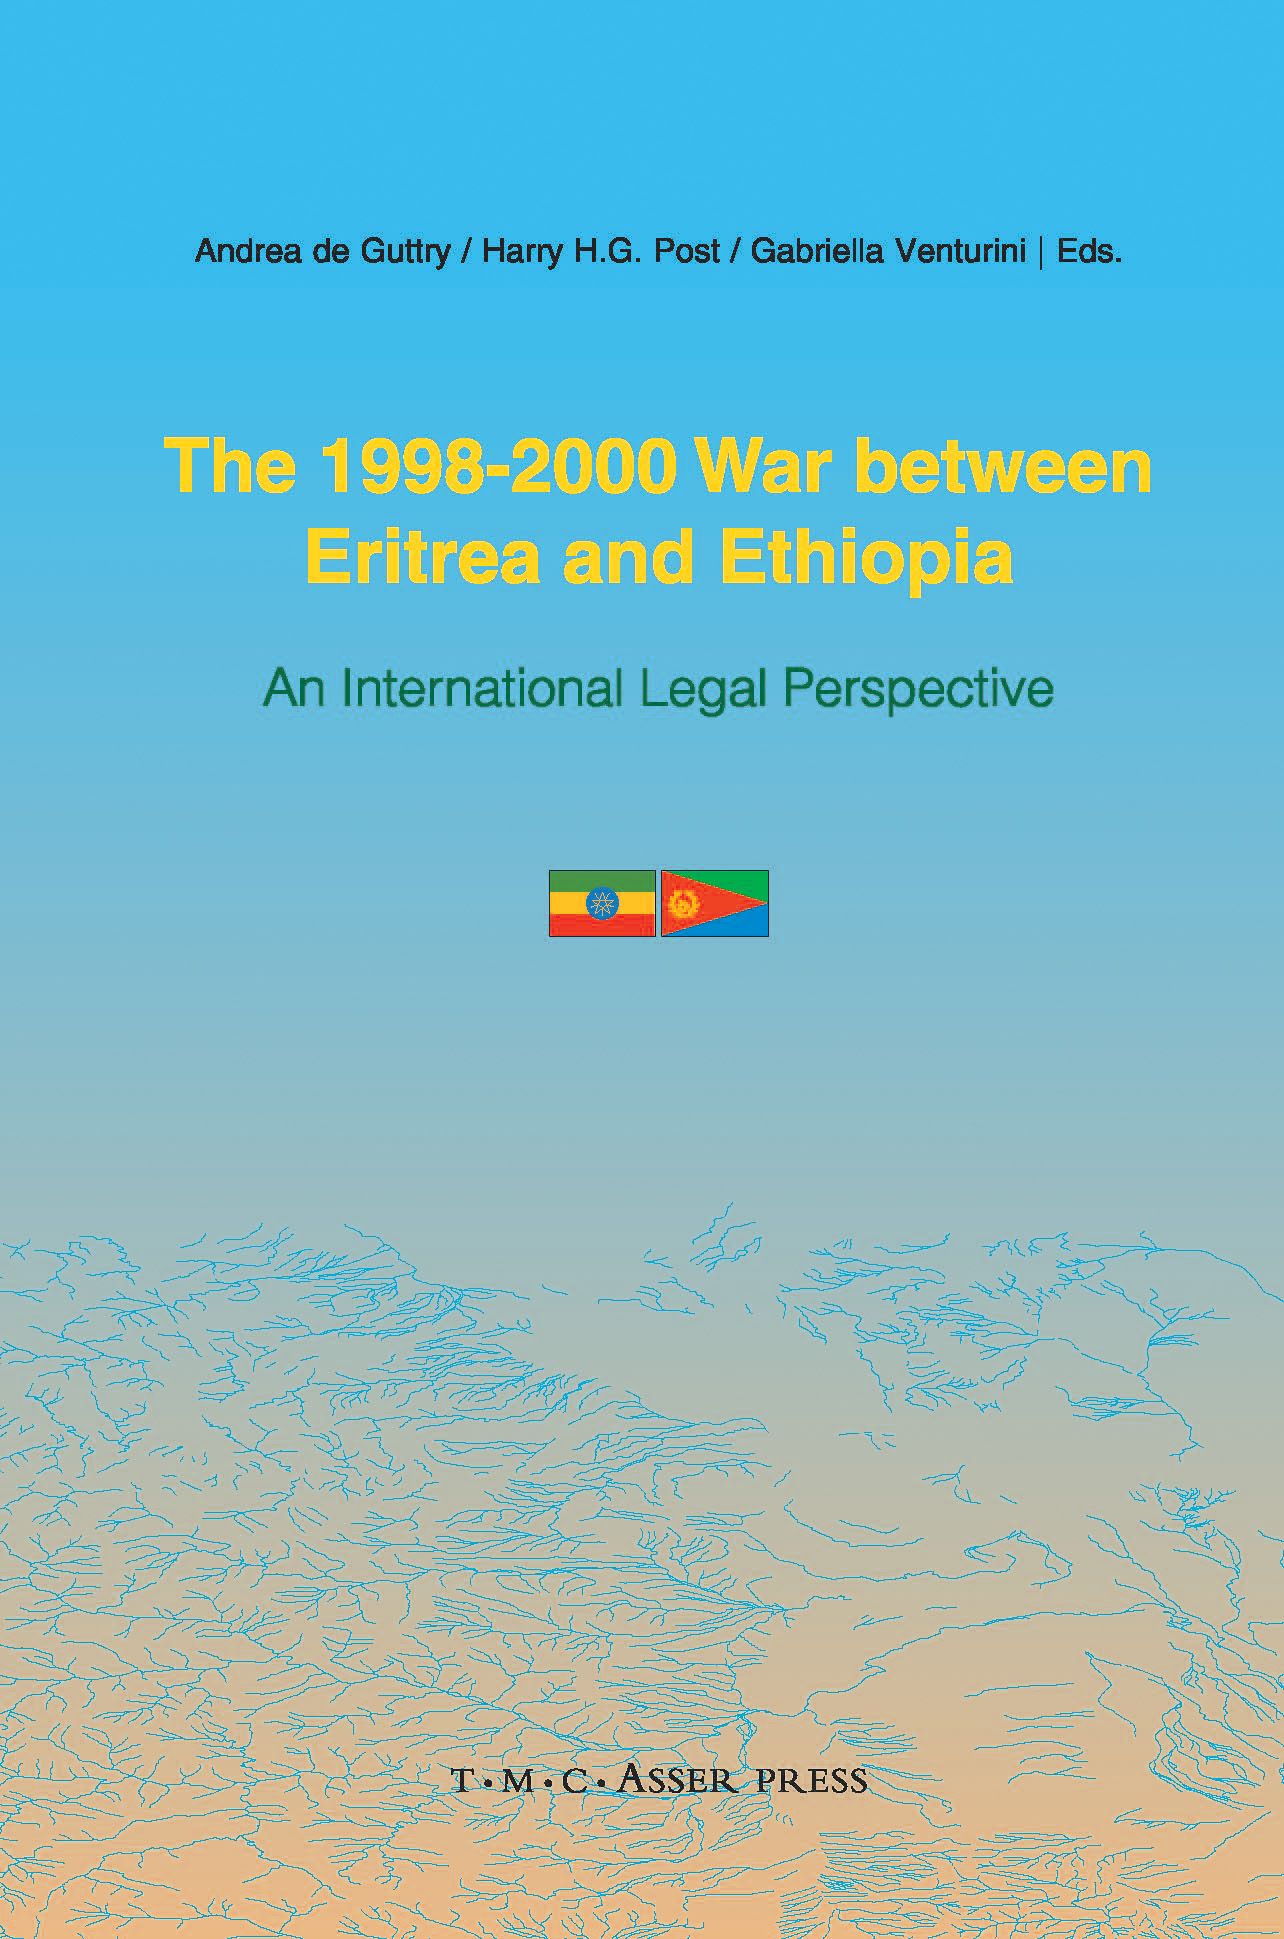 The 1998-2000 War Between Eritrea and Ethiopia - An International Legal Perspective